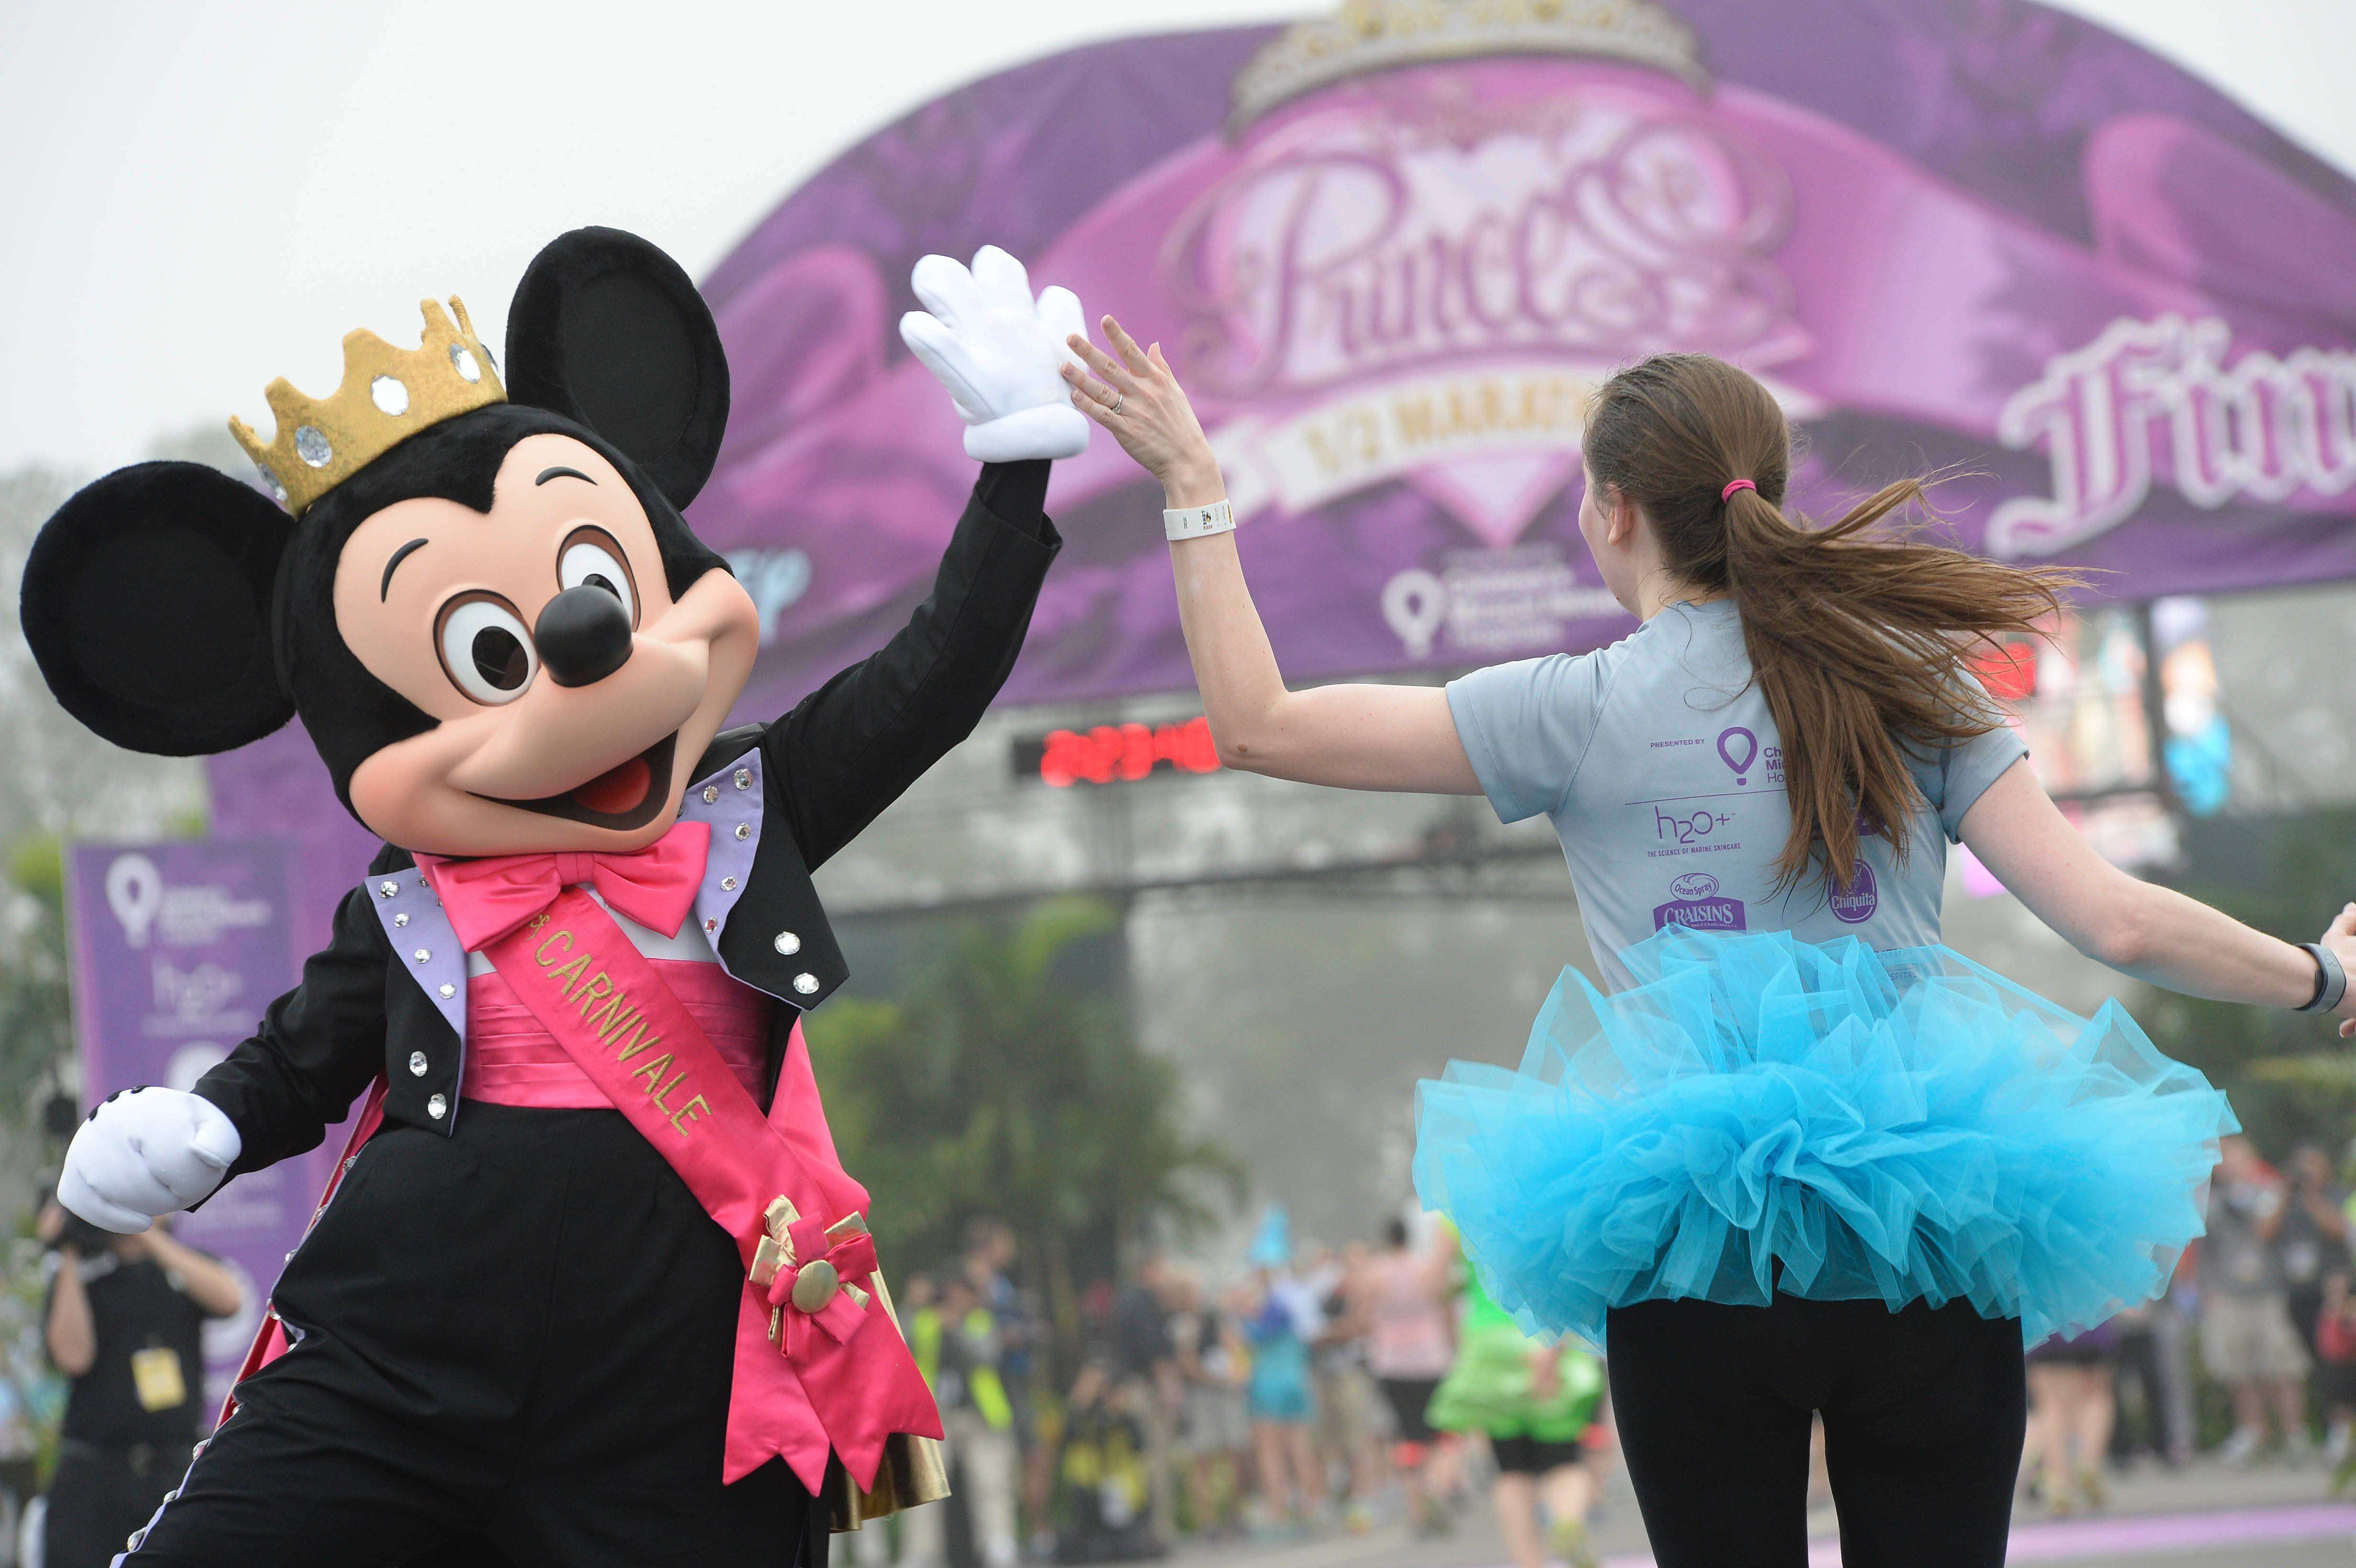 The bonuses promised to 36,000 unionized Disney theme park workers after President Donald Trump's tax law was signed are at the center of a dispute between labor groups and the company.